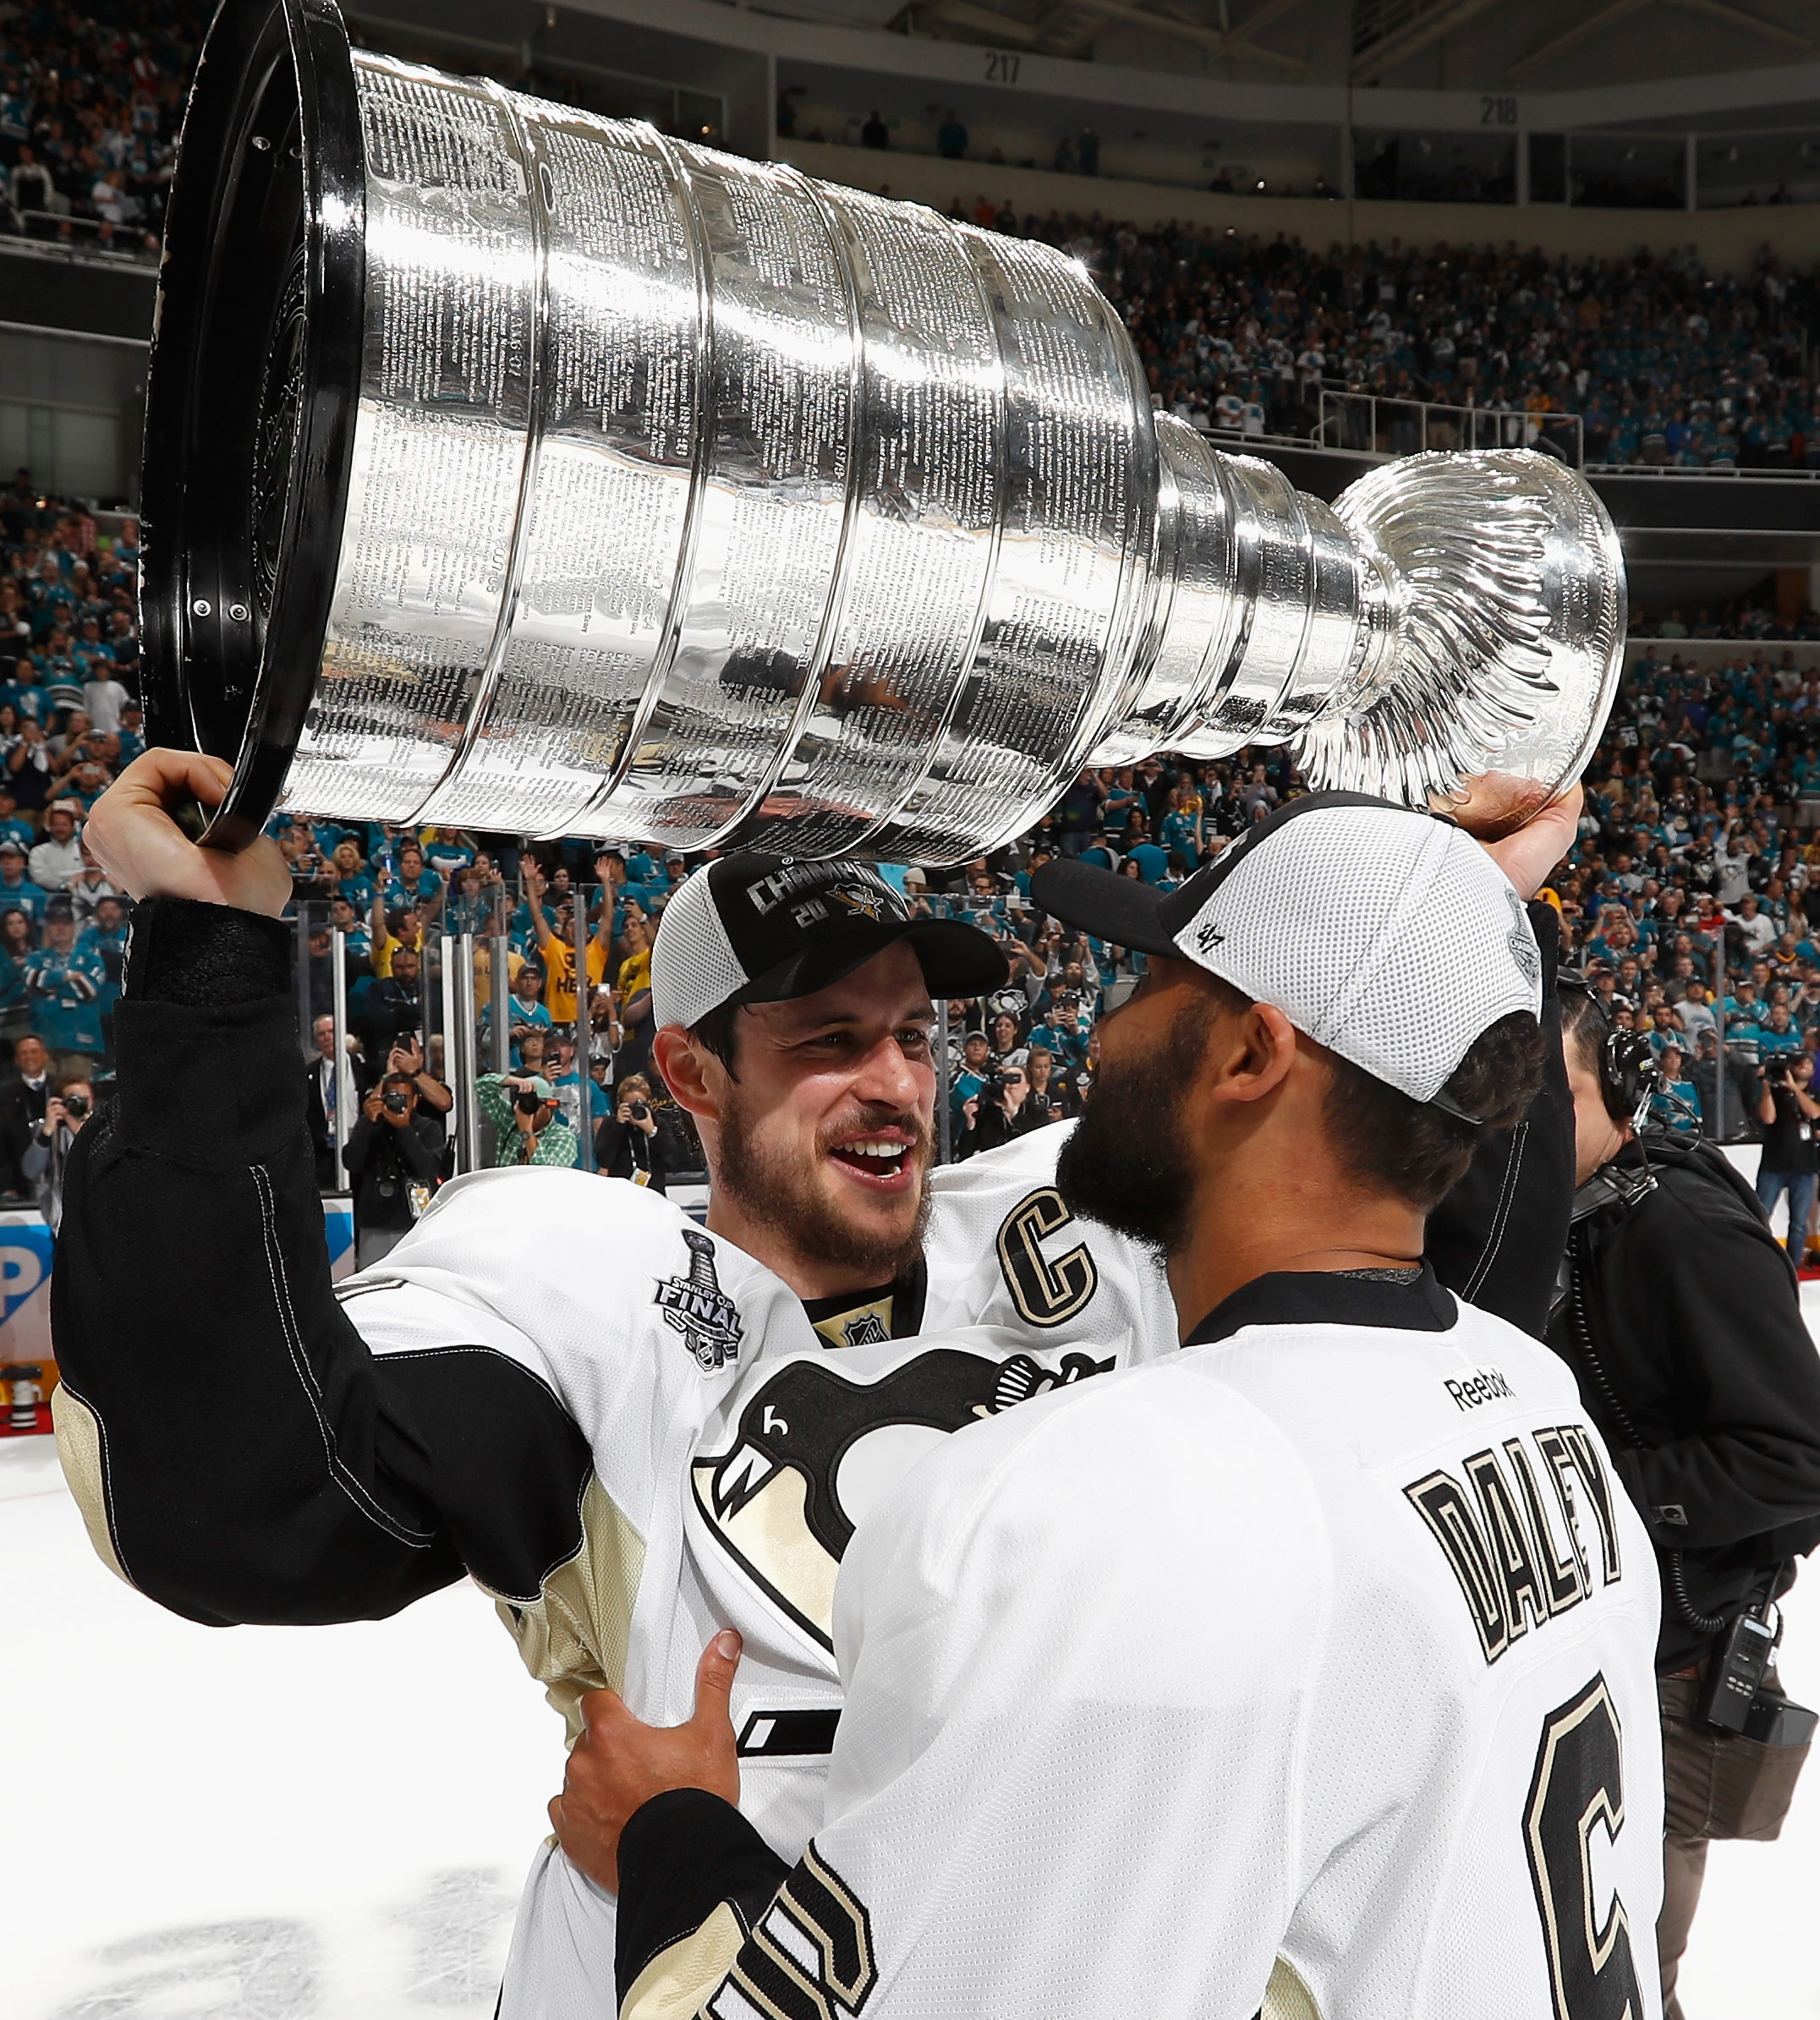 SAN JOSE, CA - JUNE 12: Sidney Crosby #87 of the Pittsburgh Penguins ands off the Stanley Cup to teammate Trevor Daley #6 after the Penguins won Game 6 of the 2016 NHL Stanley Cup Final over the San Jose Sharks at SAP Center on June 12, 2016 in San Jose, California. The Penguins won the game 3-1 and the series 4-2. (Photo by Gregory Shamus/NHLI via Getty Images)